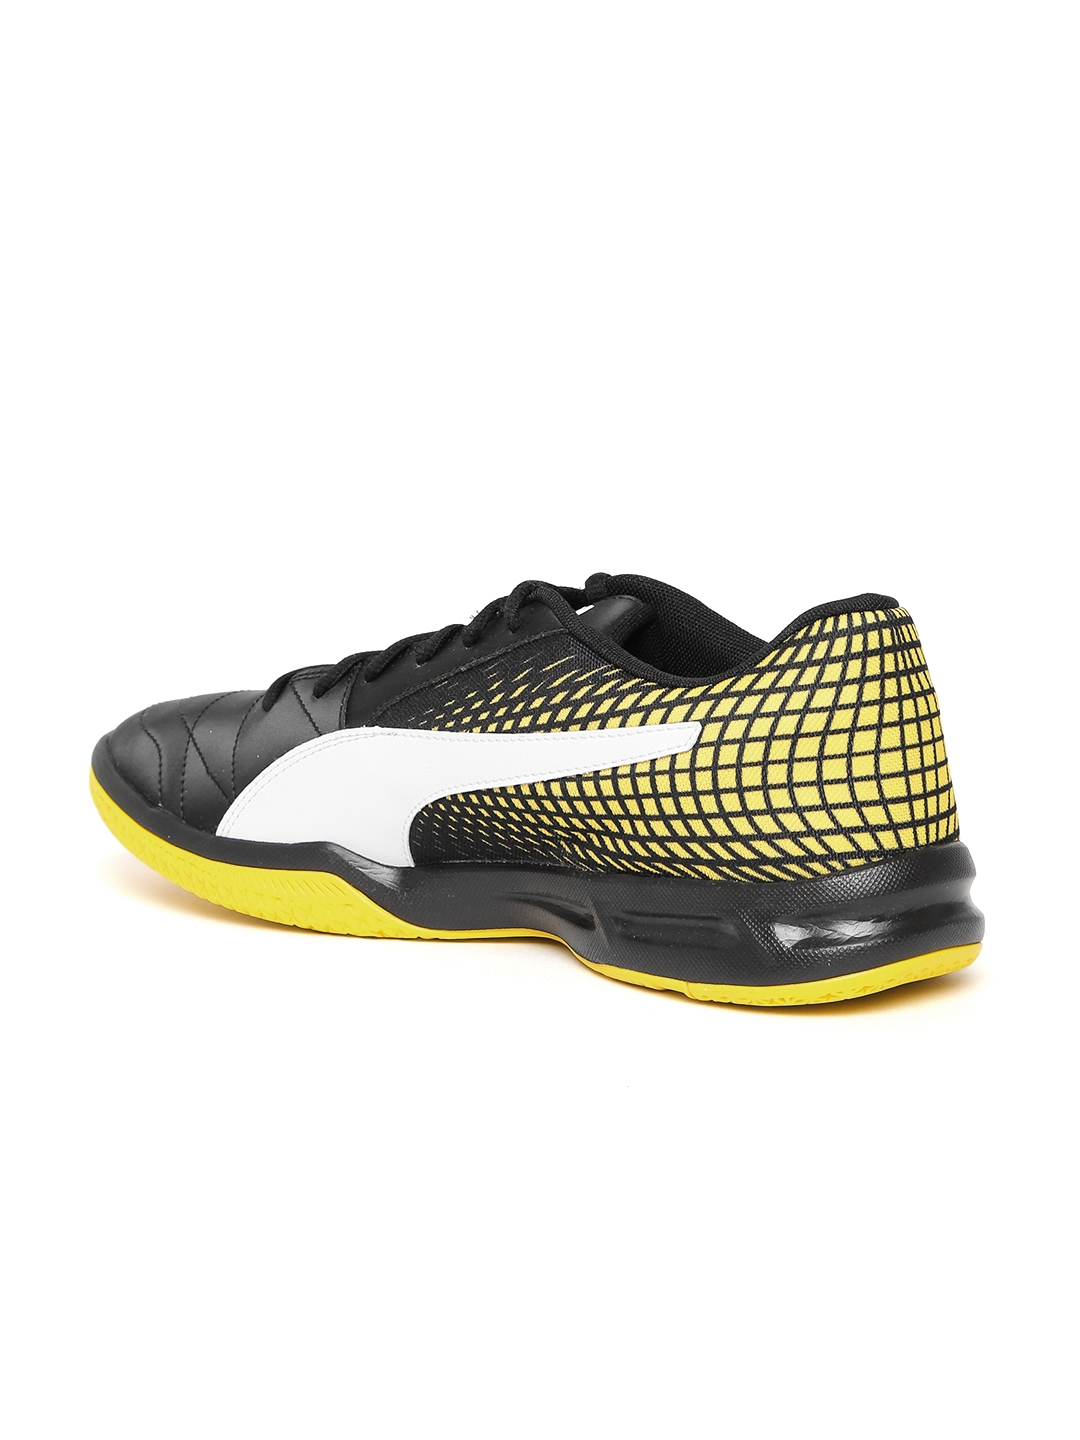 2b6da6414ea Buy Puma Men Black Veloz Indoor NG Badminton Shoes - Sports Shoes ...